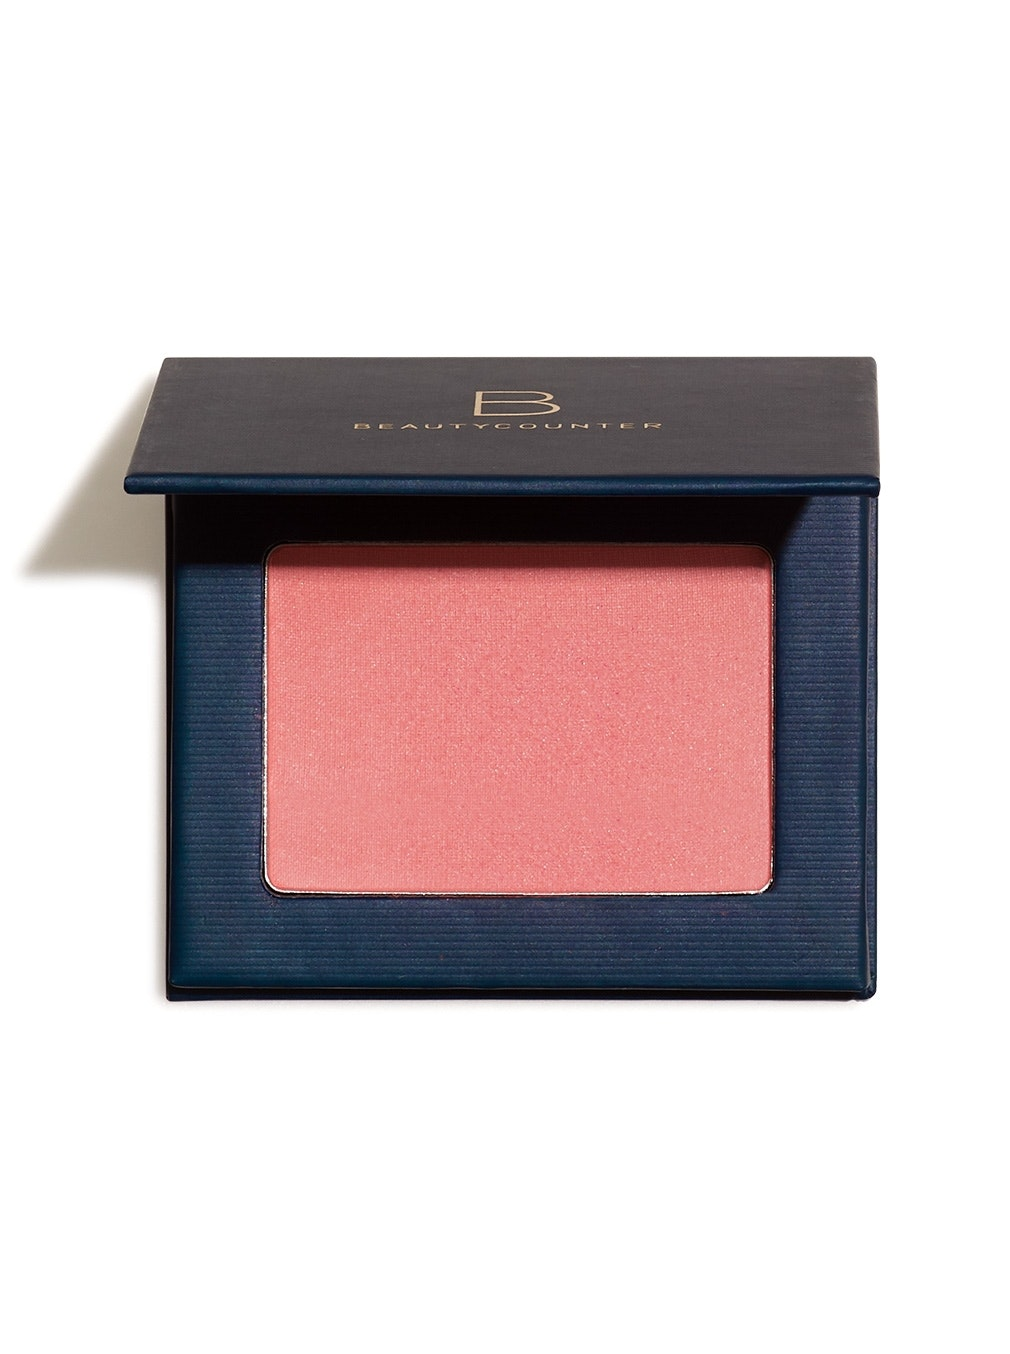 Satin Powder Blush in Melon